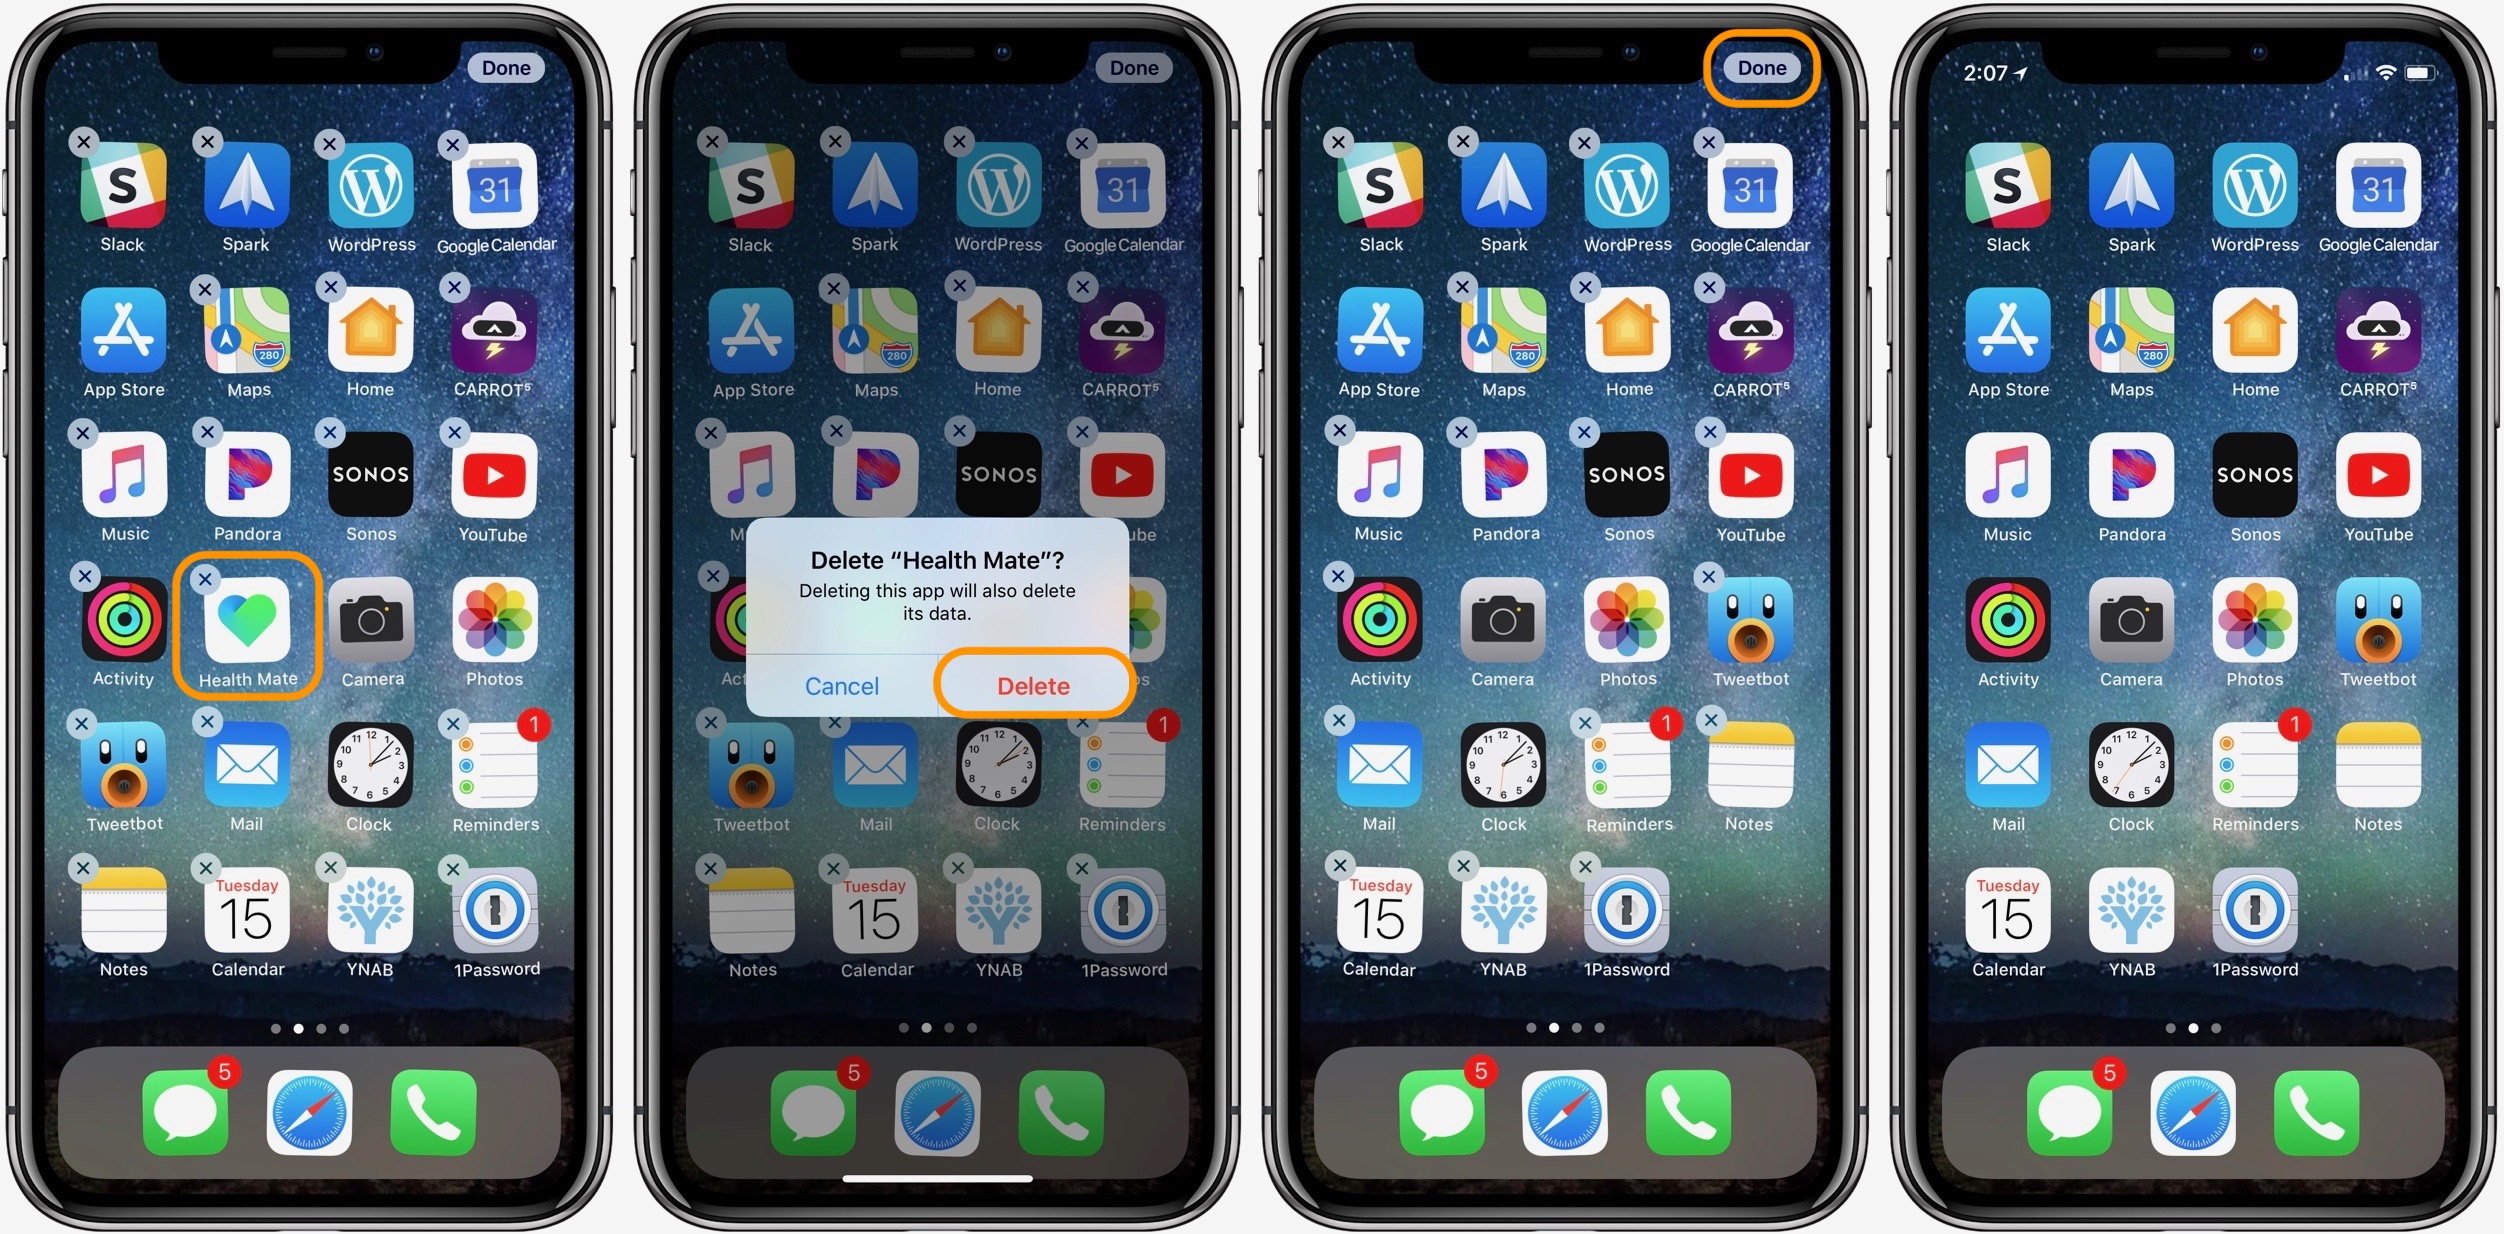 iphone how to delete apps and set up automatic offloading 9to5mac